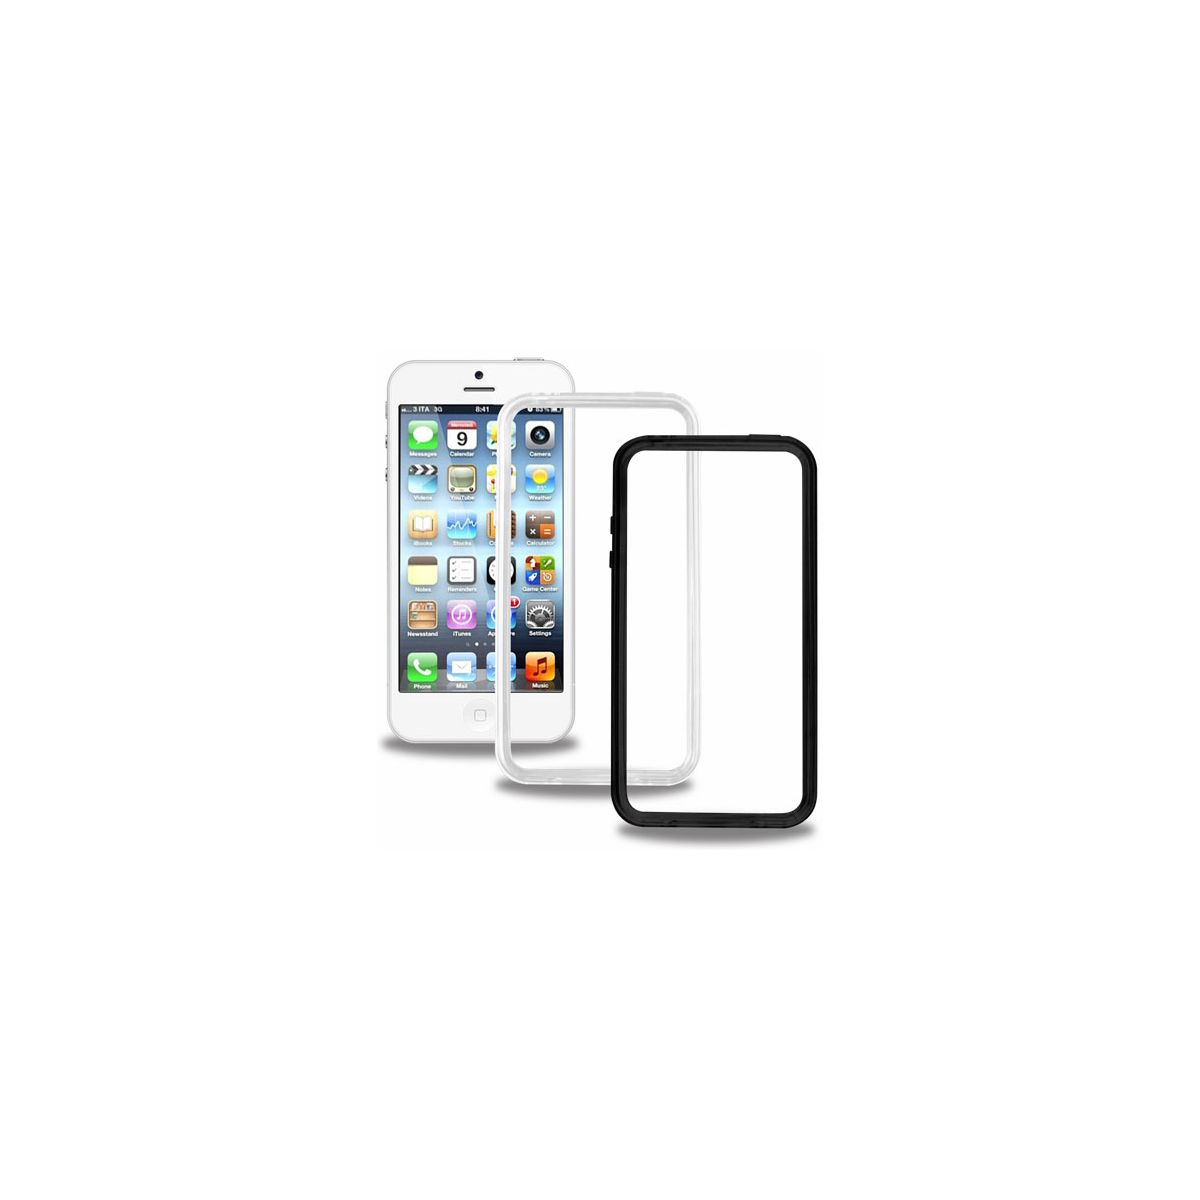 Bumper blueway iphone 5/5s noir/transparent x2 + pe - 15% de remise immédiate avec le code : multi15 (photo)